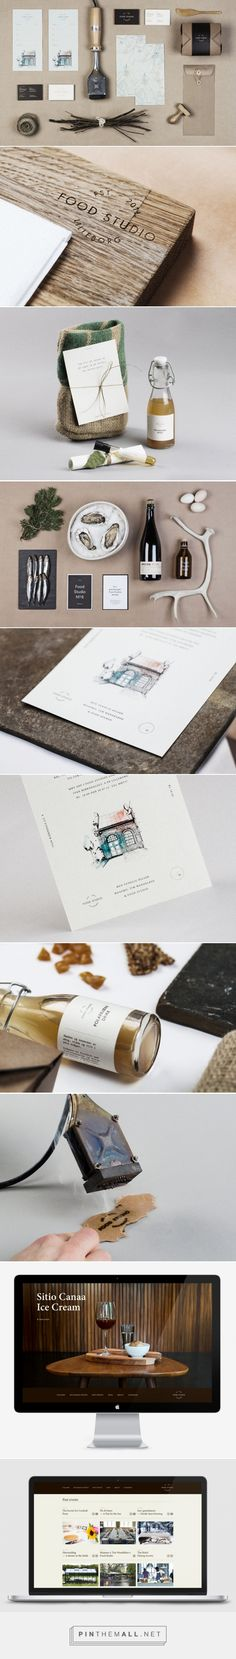 New Brand Identity for Food Studio by Bielke&Yang - BP&O - created via http://pinthemall.net